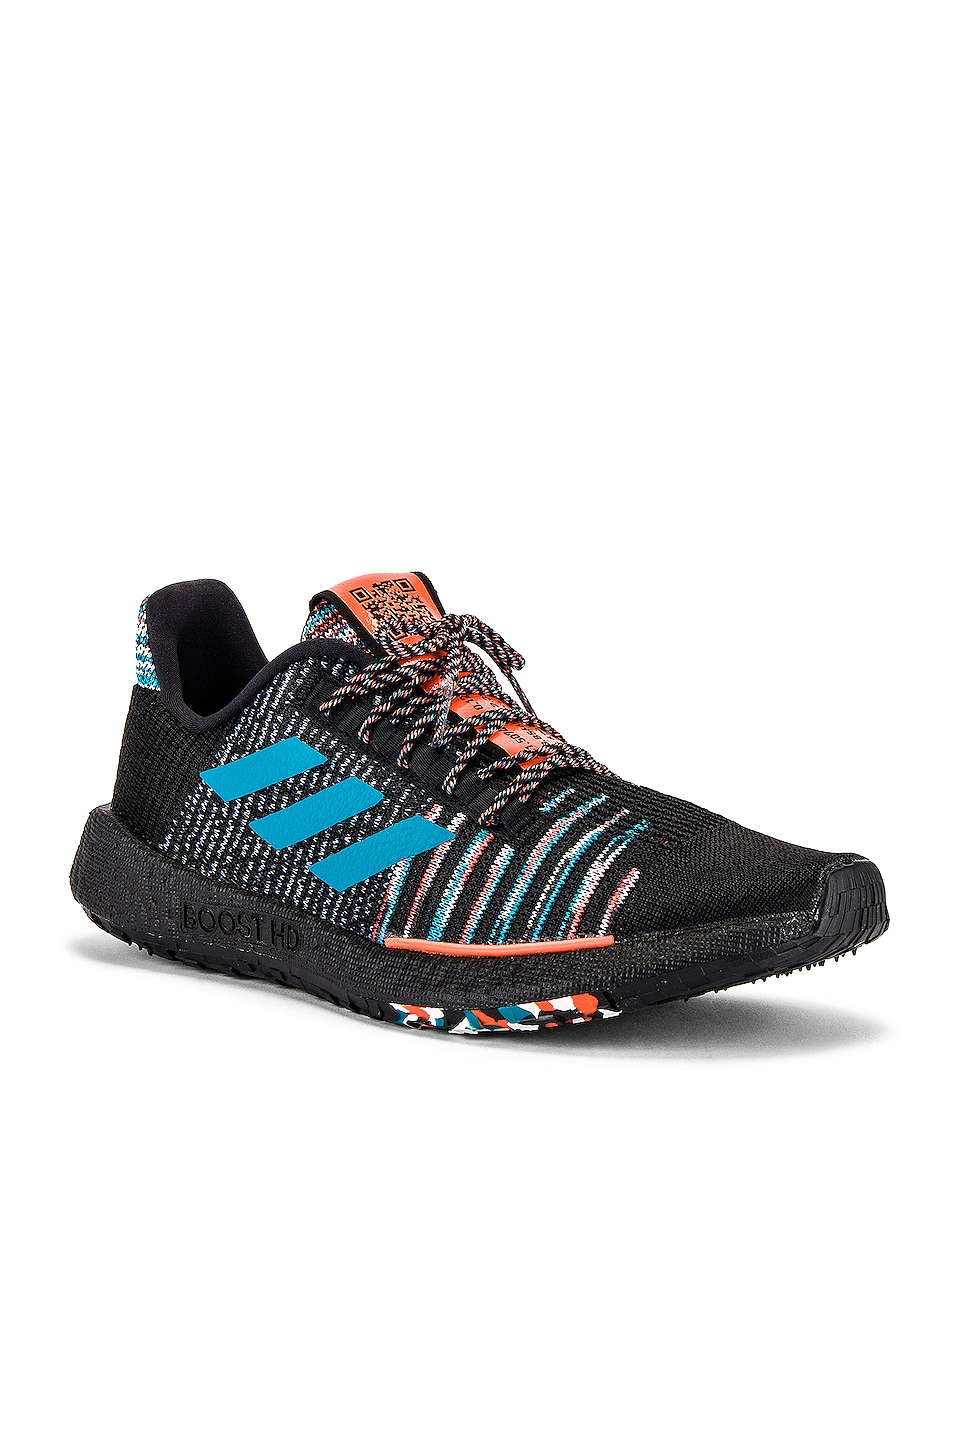 adidas by MISSONI Pulseboost HD in Black & White & Active Orange